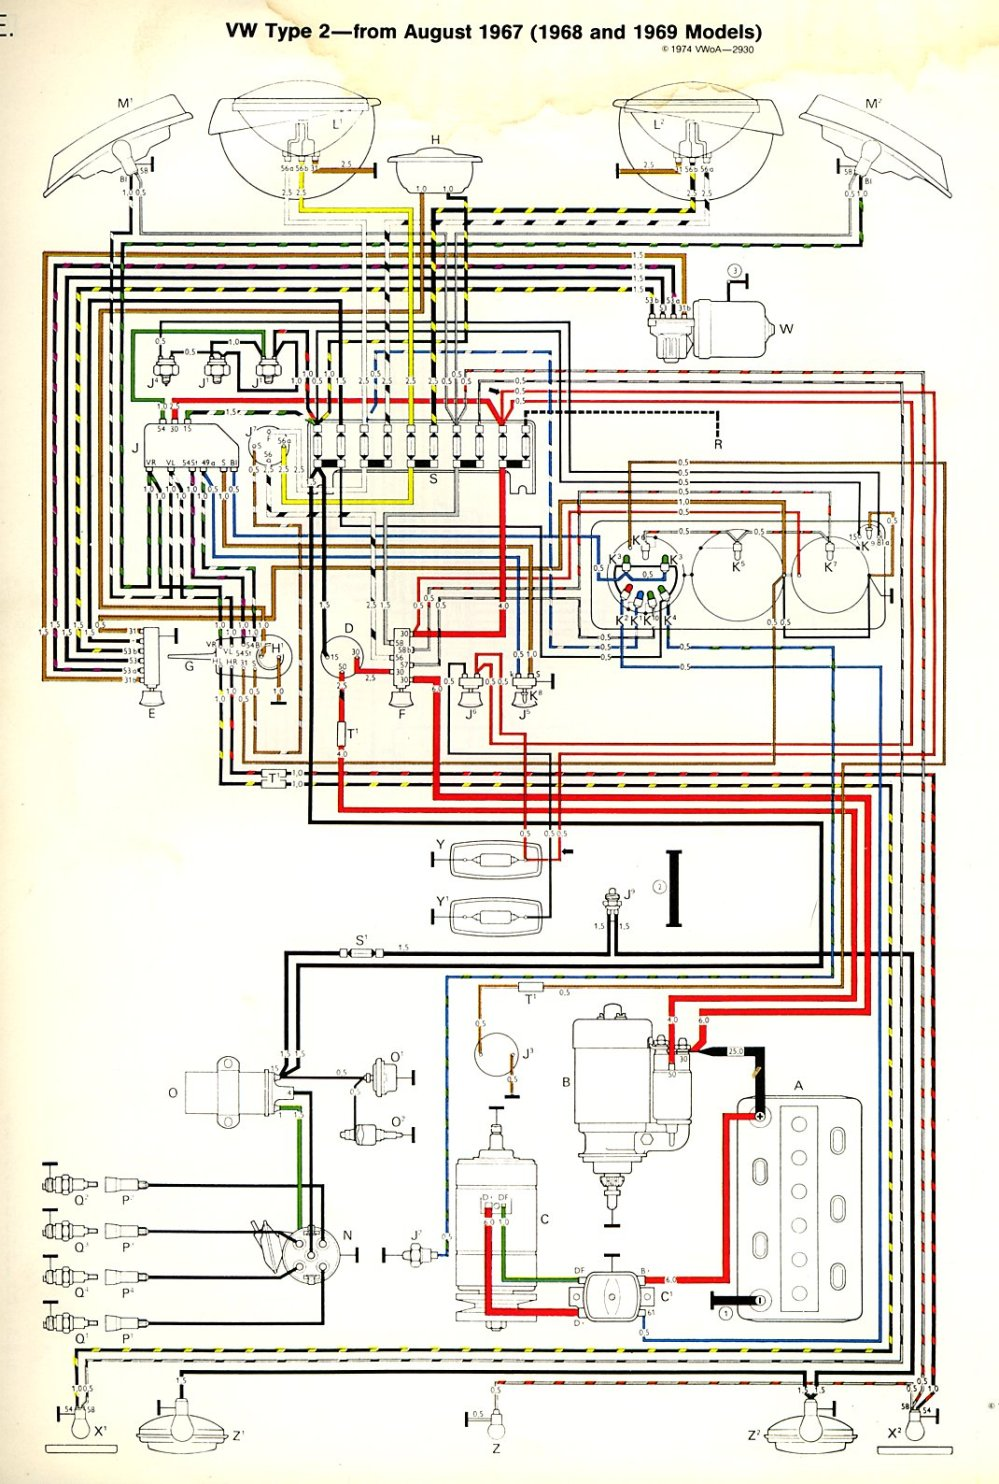 medium resolution of 1968 69 bus wiring diagram thegoldenbug com vw dune buggy wiring schematic vw voltage regulator wiring diagram